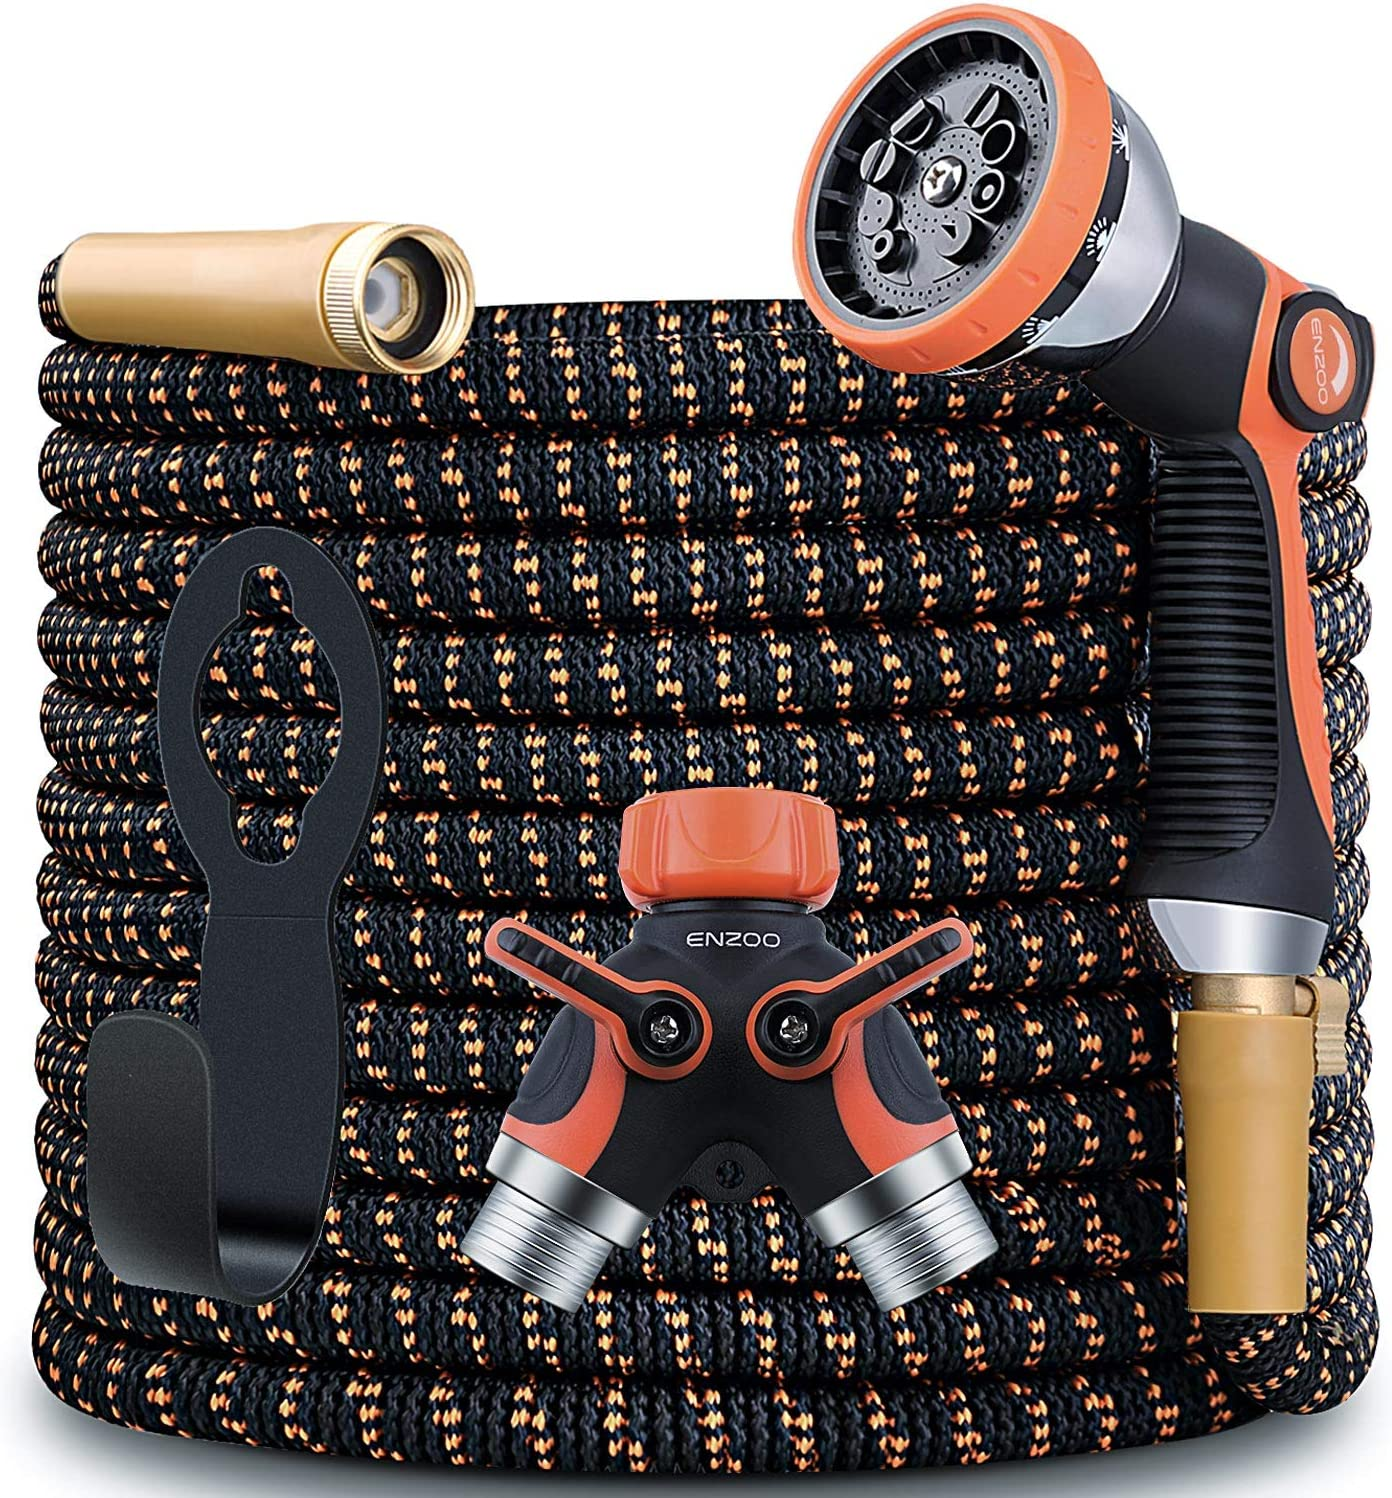 ENZOO Garden Hose Expandable- 100 Feet 4-Layers Latex/Superior Strength 3750D/3/4 Strong Brass Connectors/2-Way Pocket Flexible Splitter with 10 Function Zinc Spray Nozzle